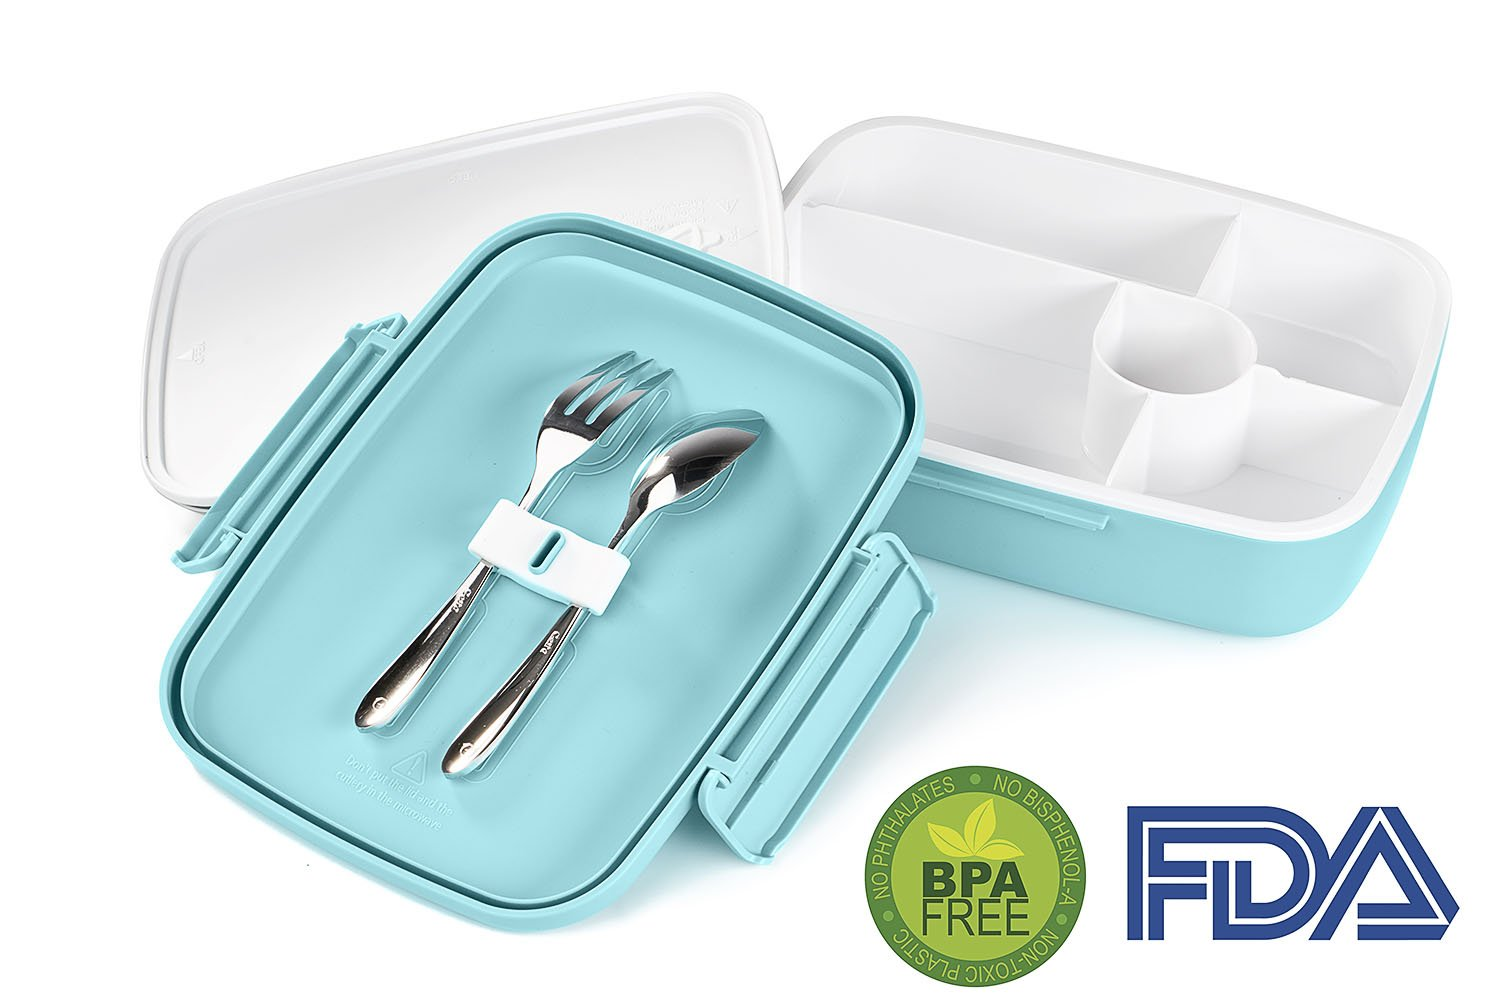 LS LifeStyle Bento Lunch Box 5 Compartments For Kids, Adults Leakproof, Microwave and Dishwasher Safe, BPA Free Container (Fork + Spoon included) (Blue)